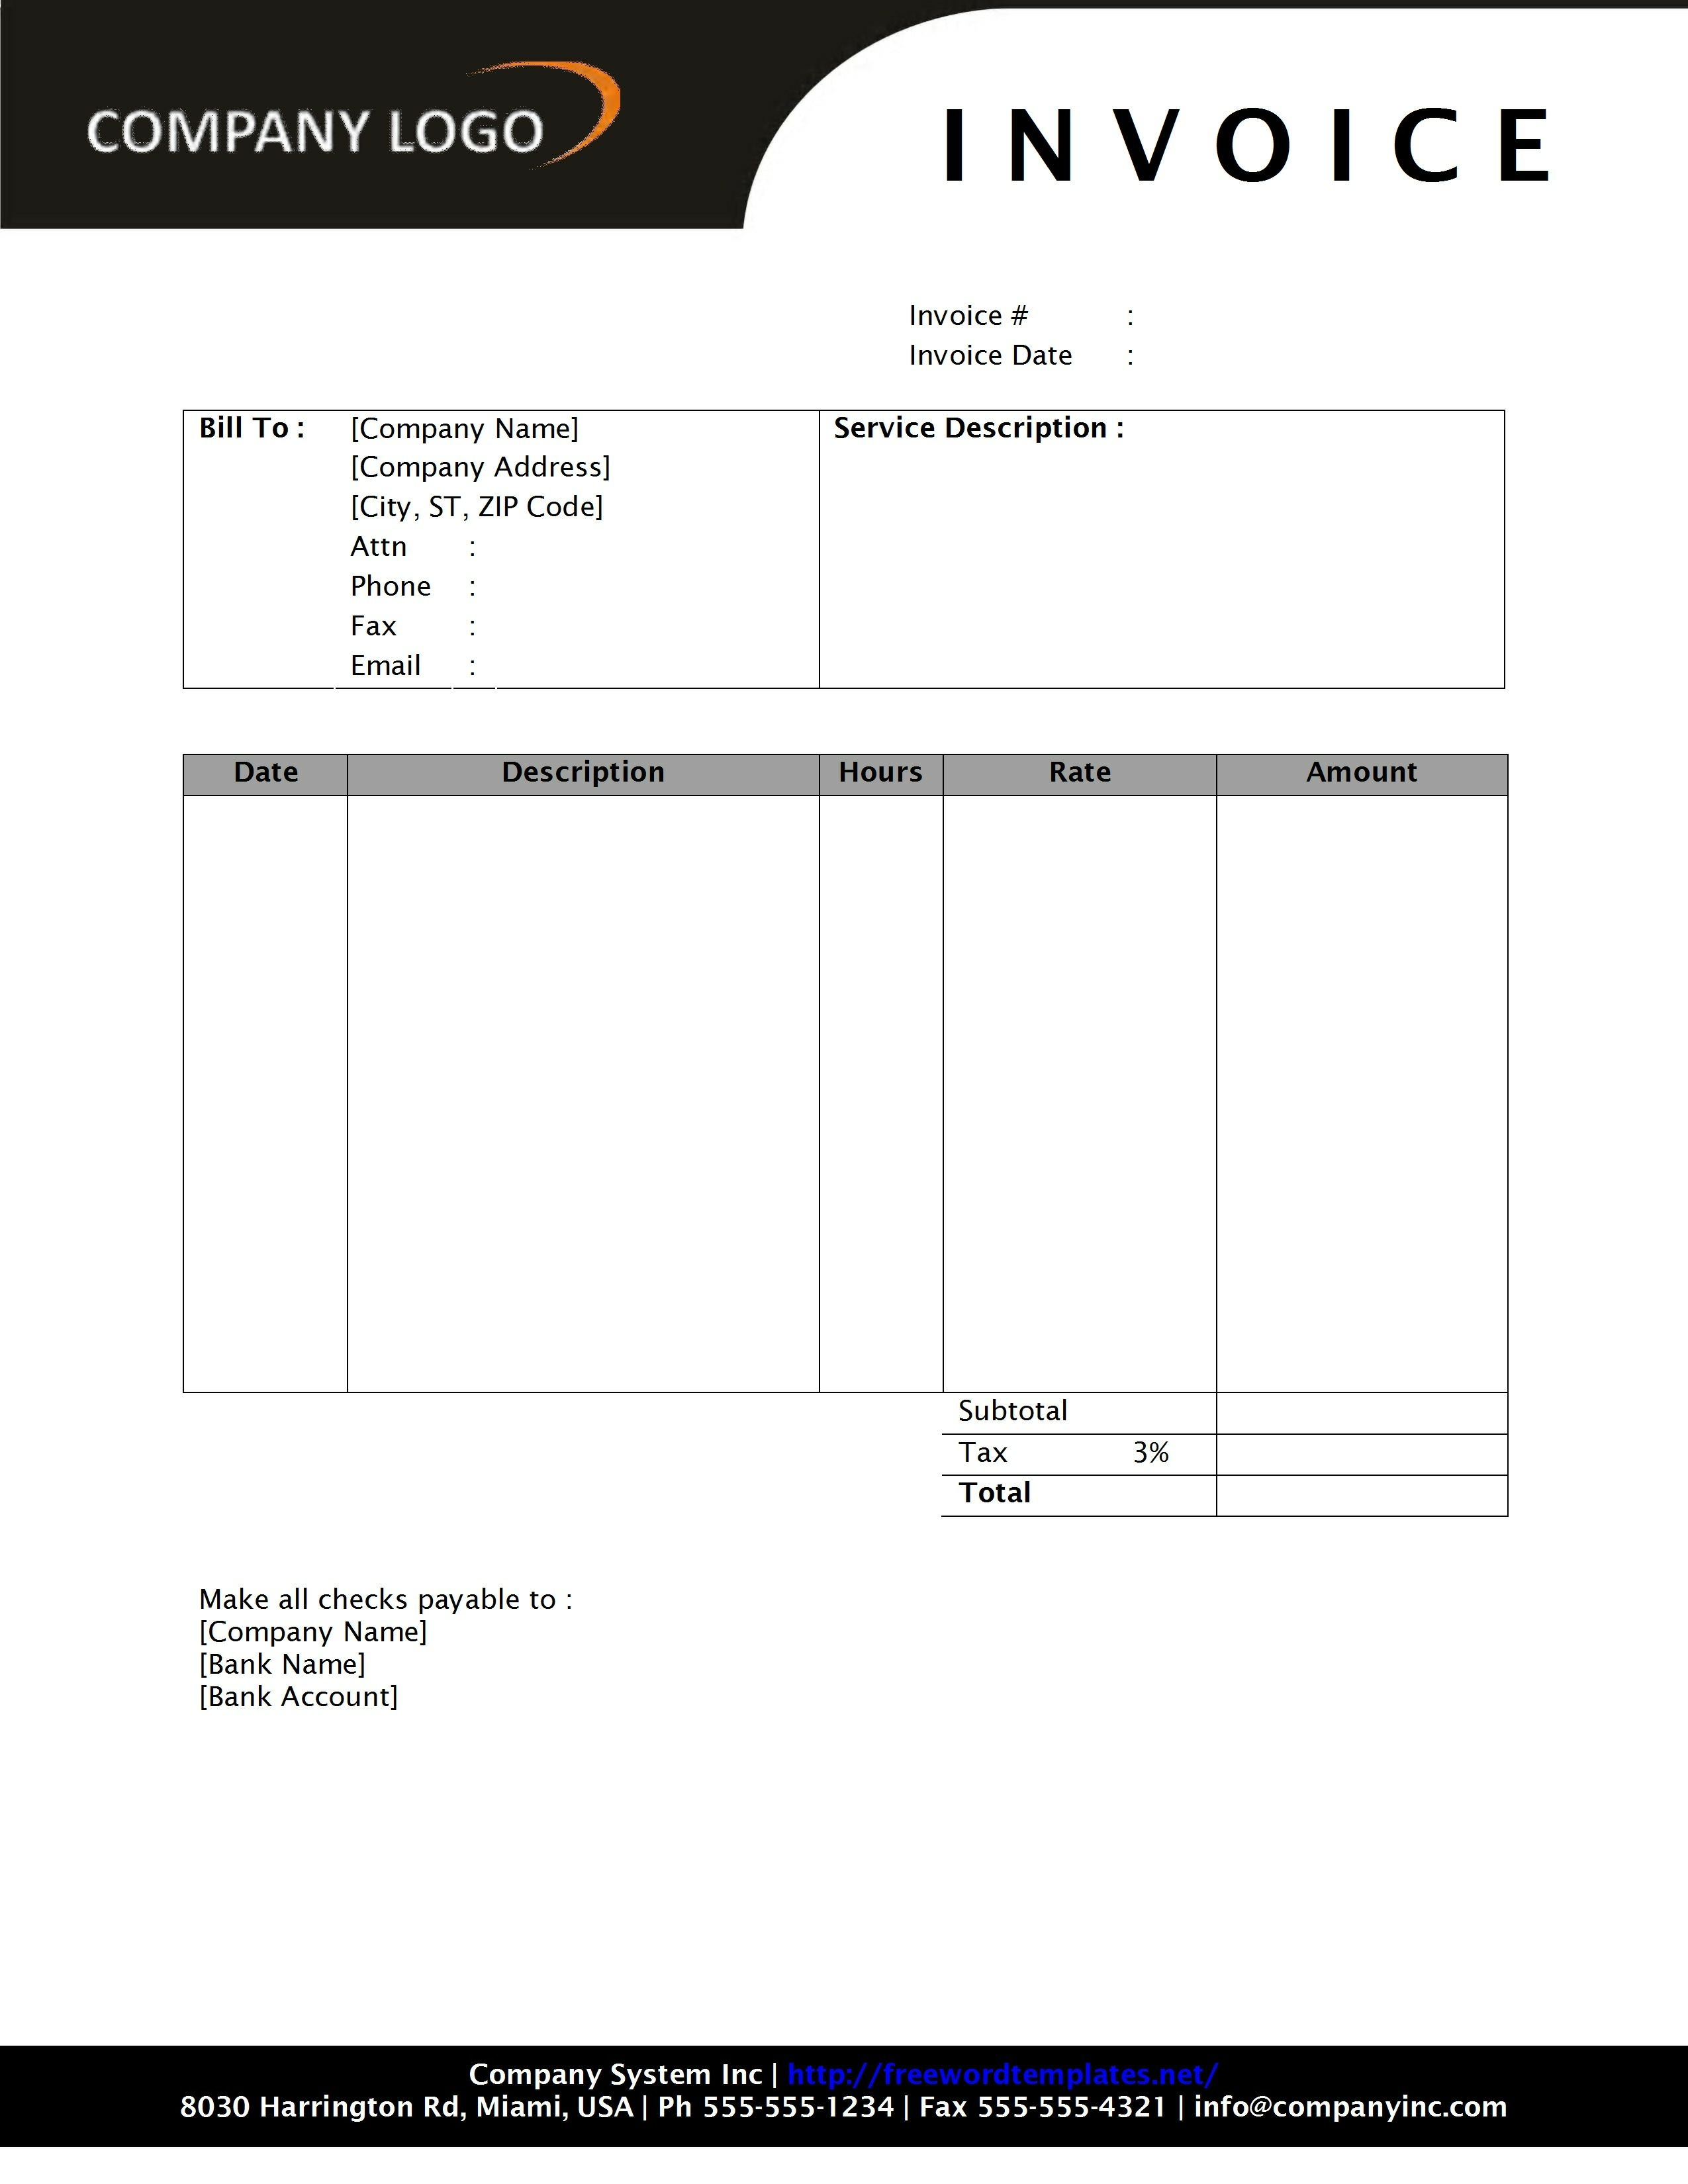 invoice template in excel 2010 invoice template word 2010 neuracels 2550 X 3300